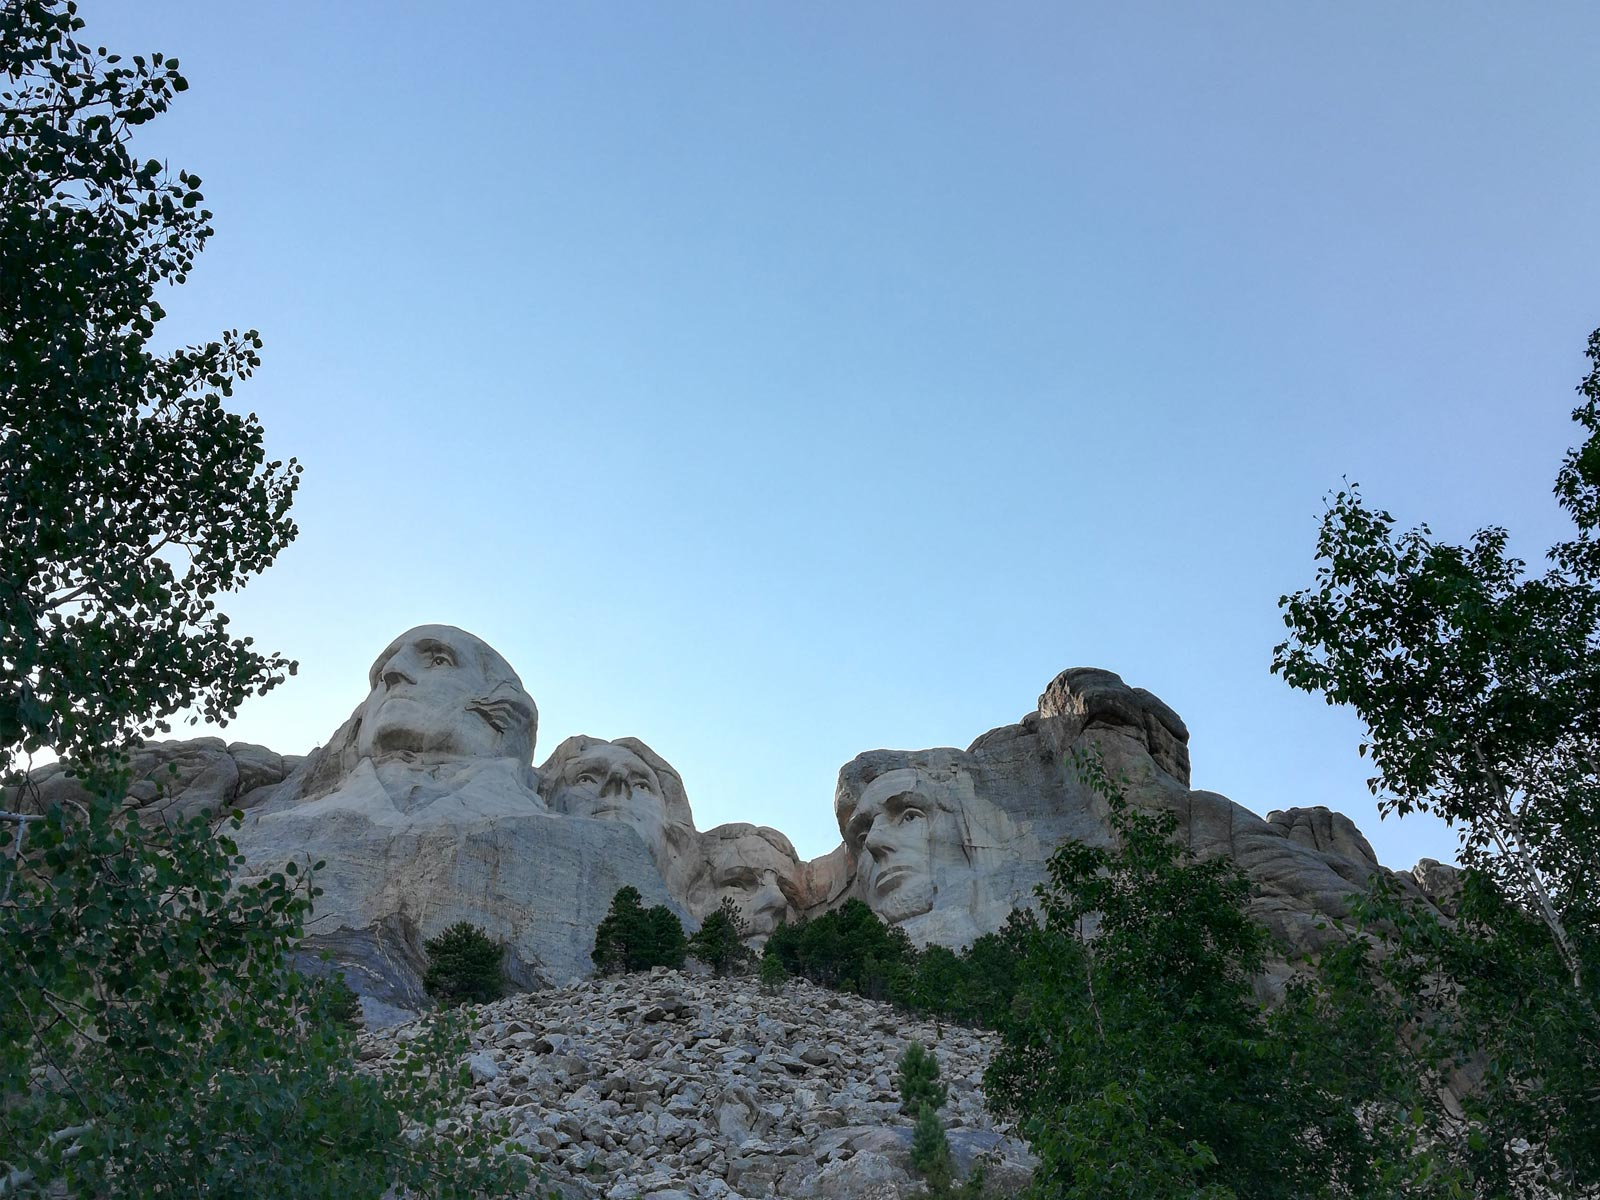 Mount Rushmore against the evening sky in South Dakota